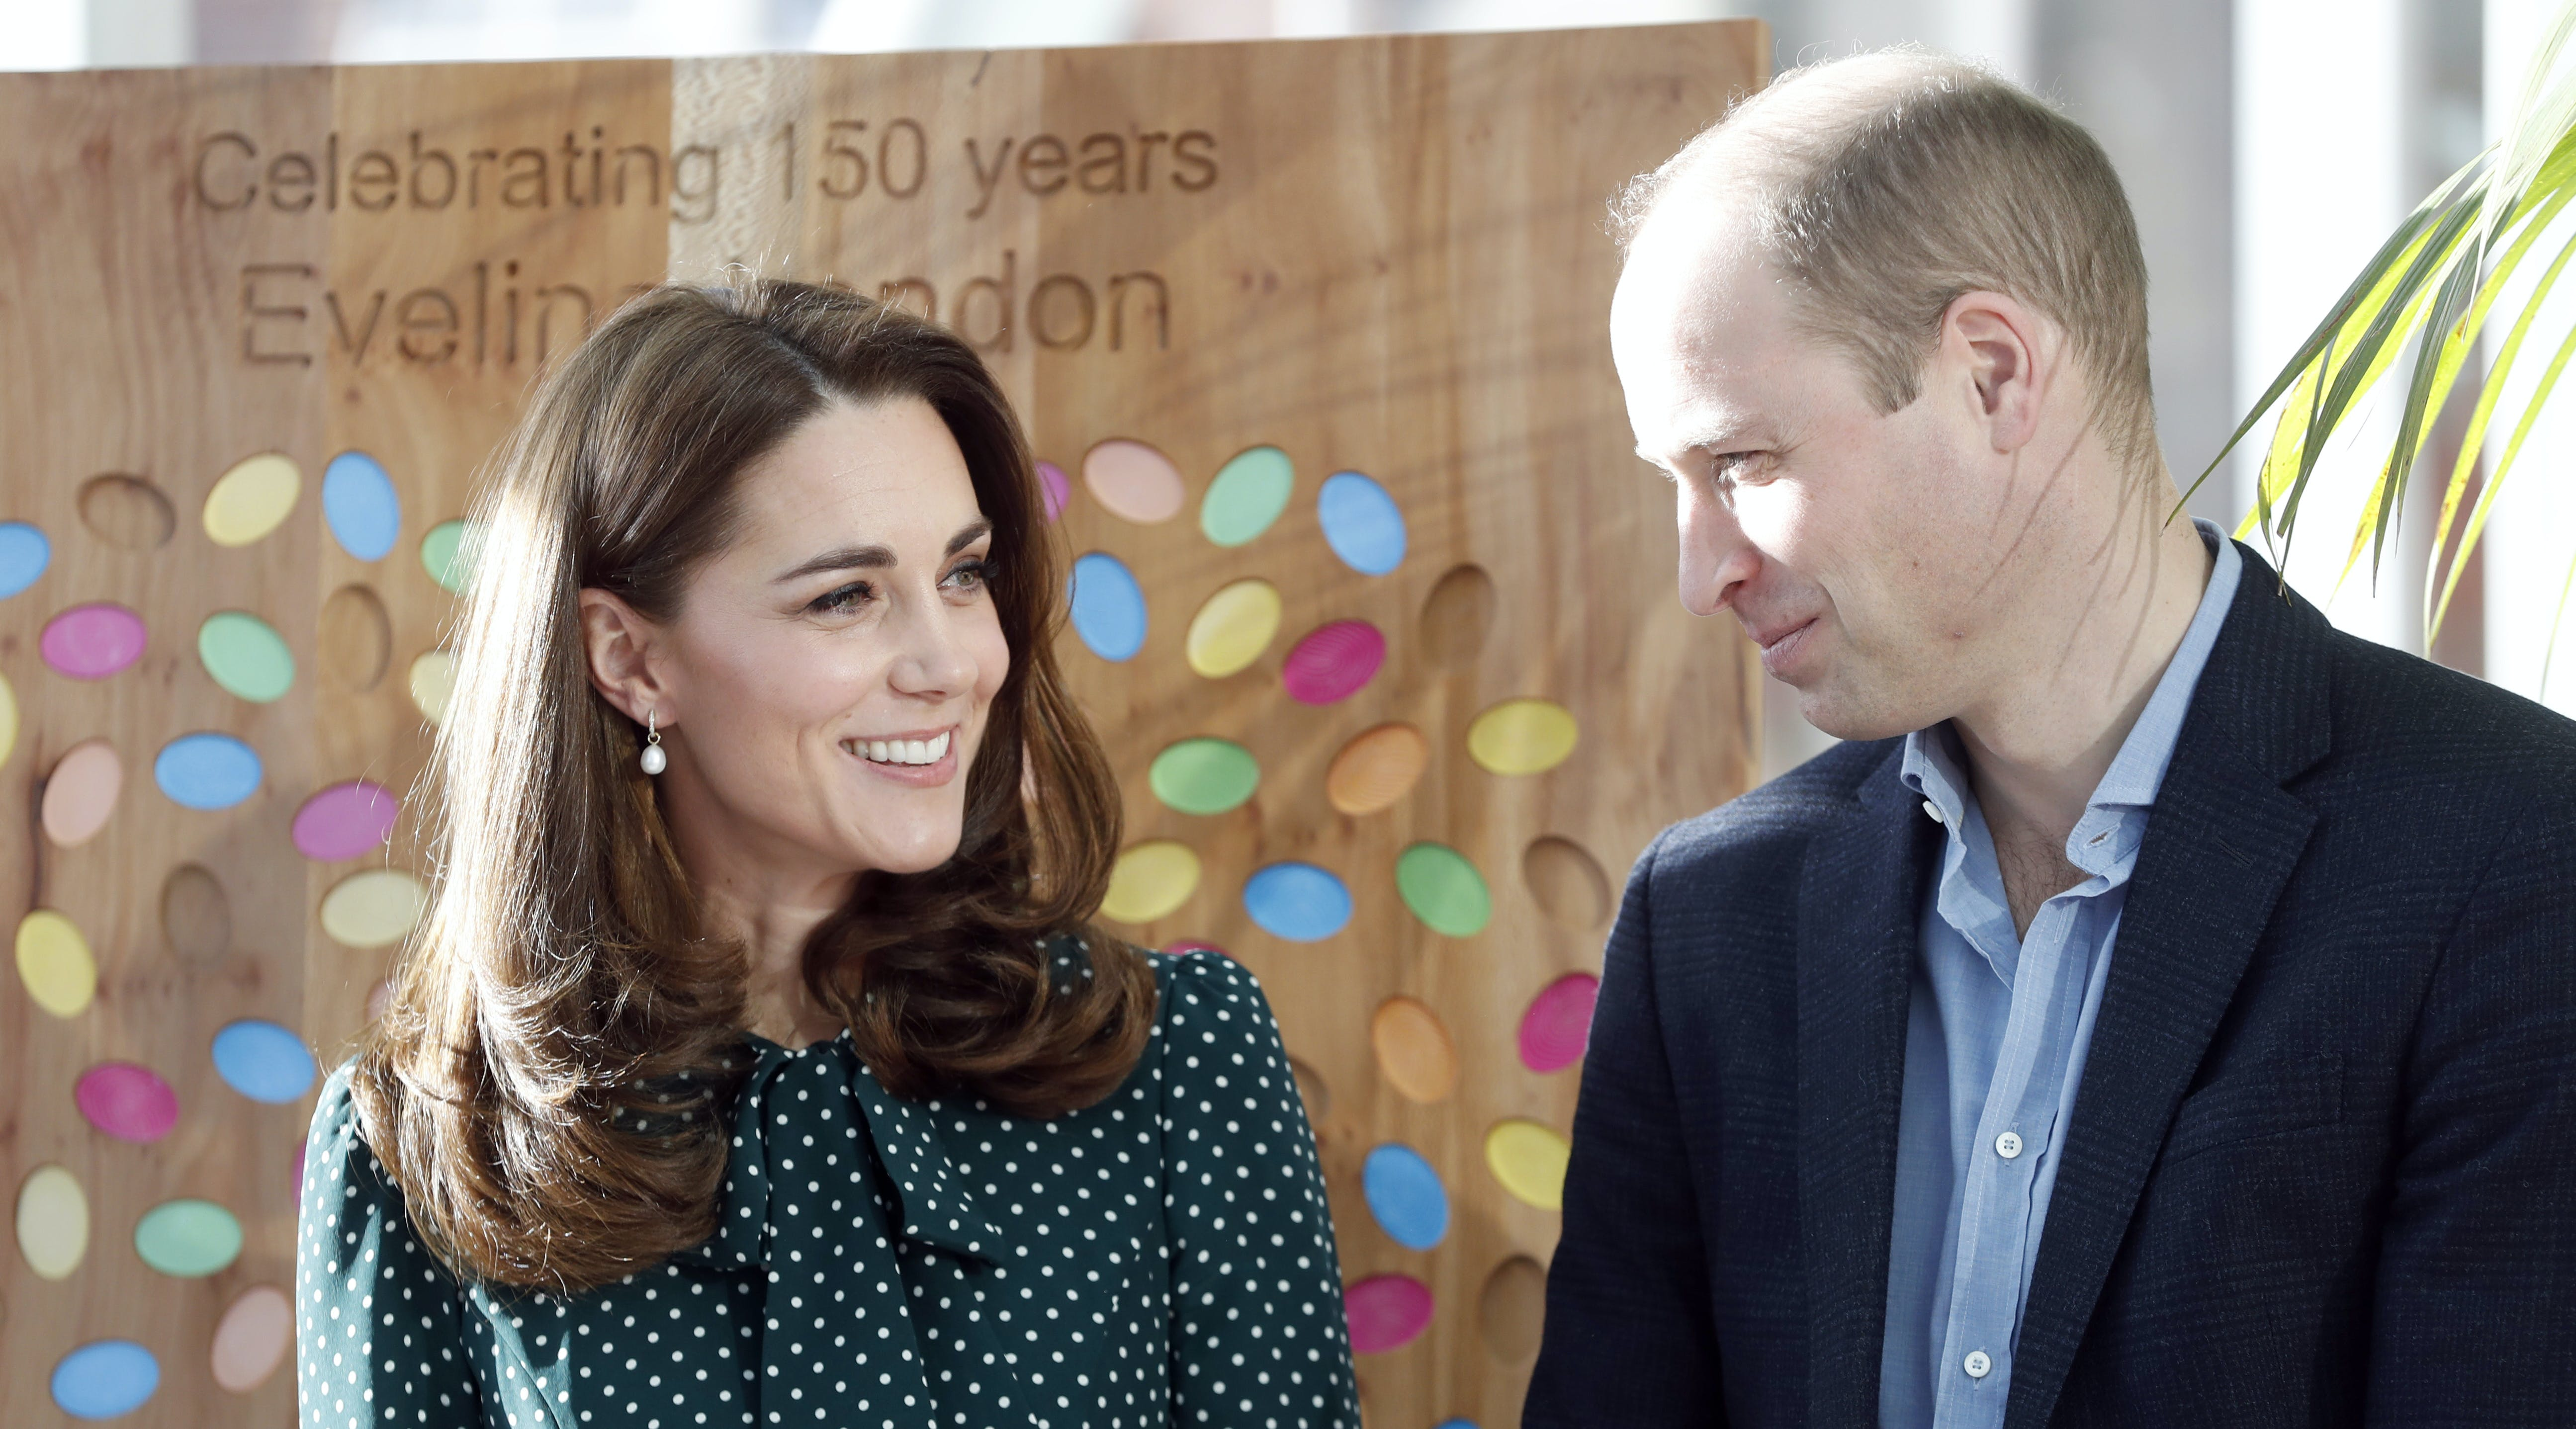 Kate Middleton & Prince William Will Divide and Conquer for Their Next Royal Engagements